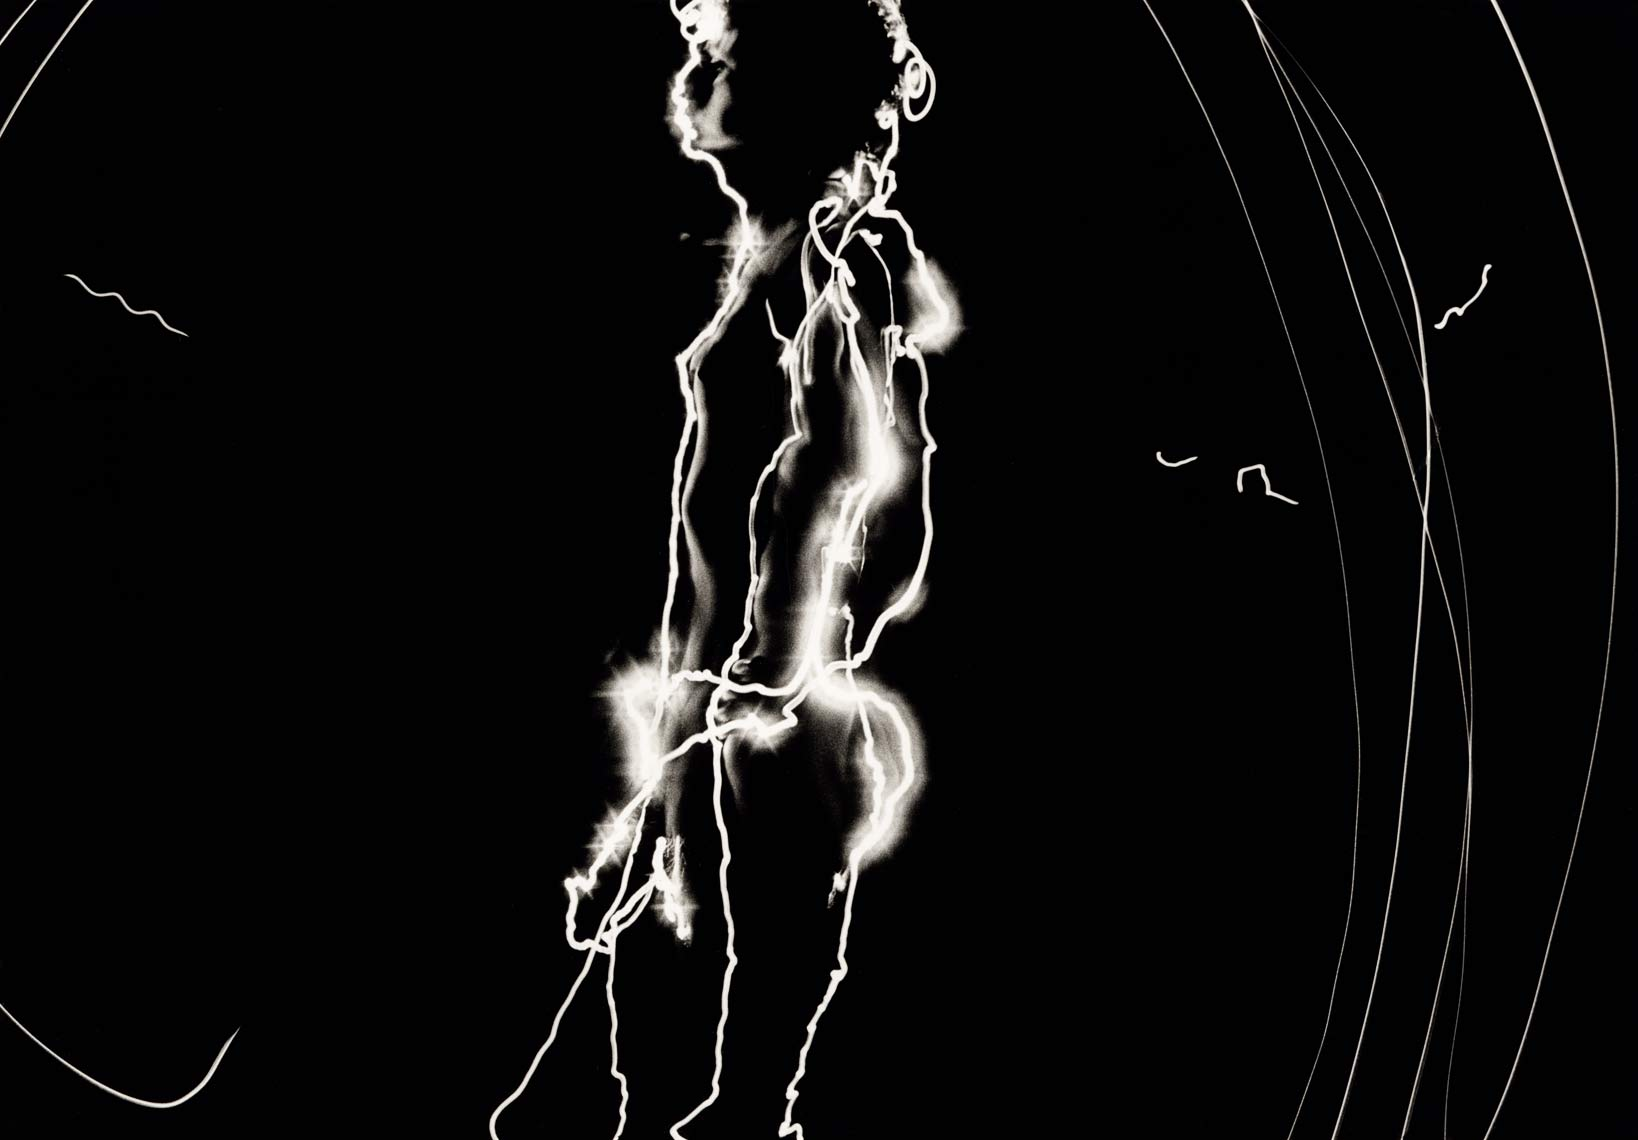 David Lebe; Self Portrait 2, 1976, male nude, light drawing, black and white photograph